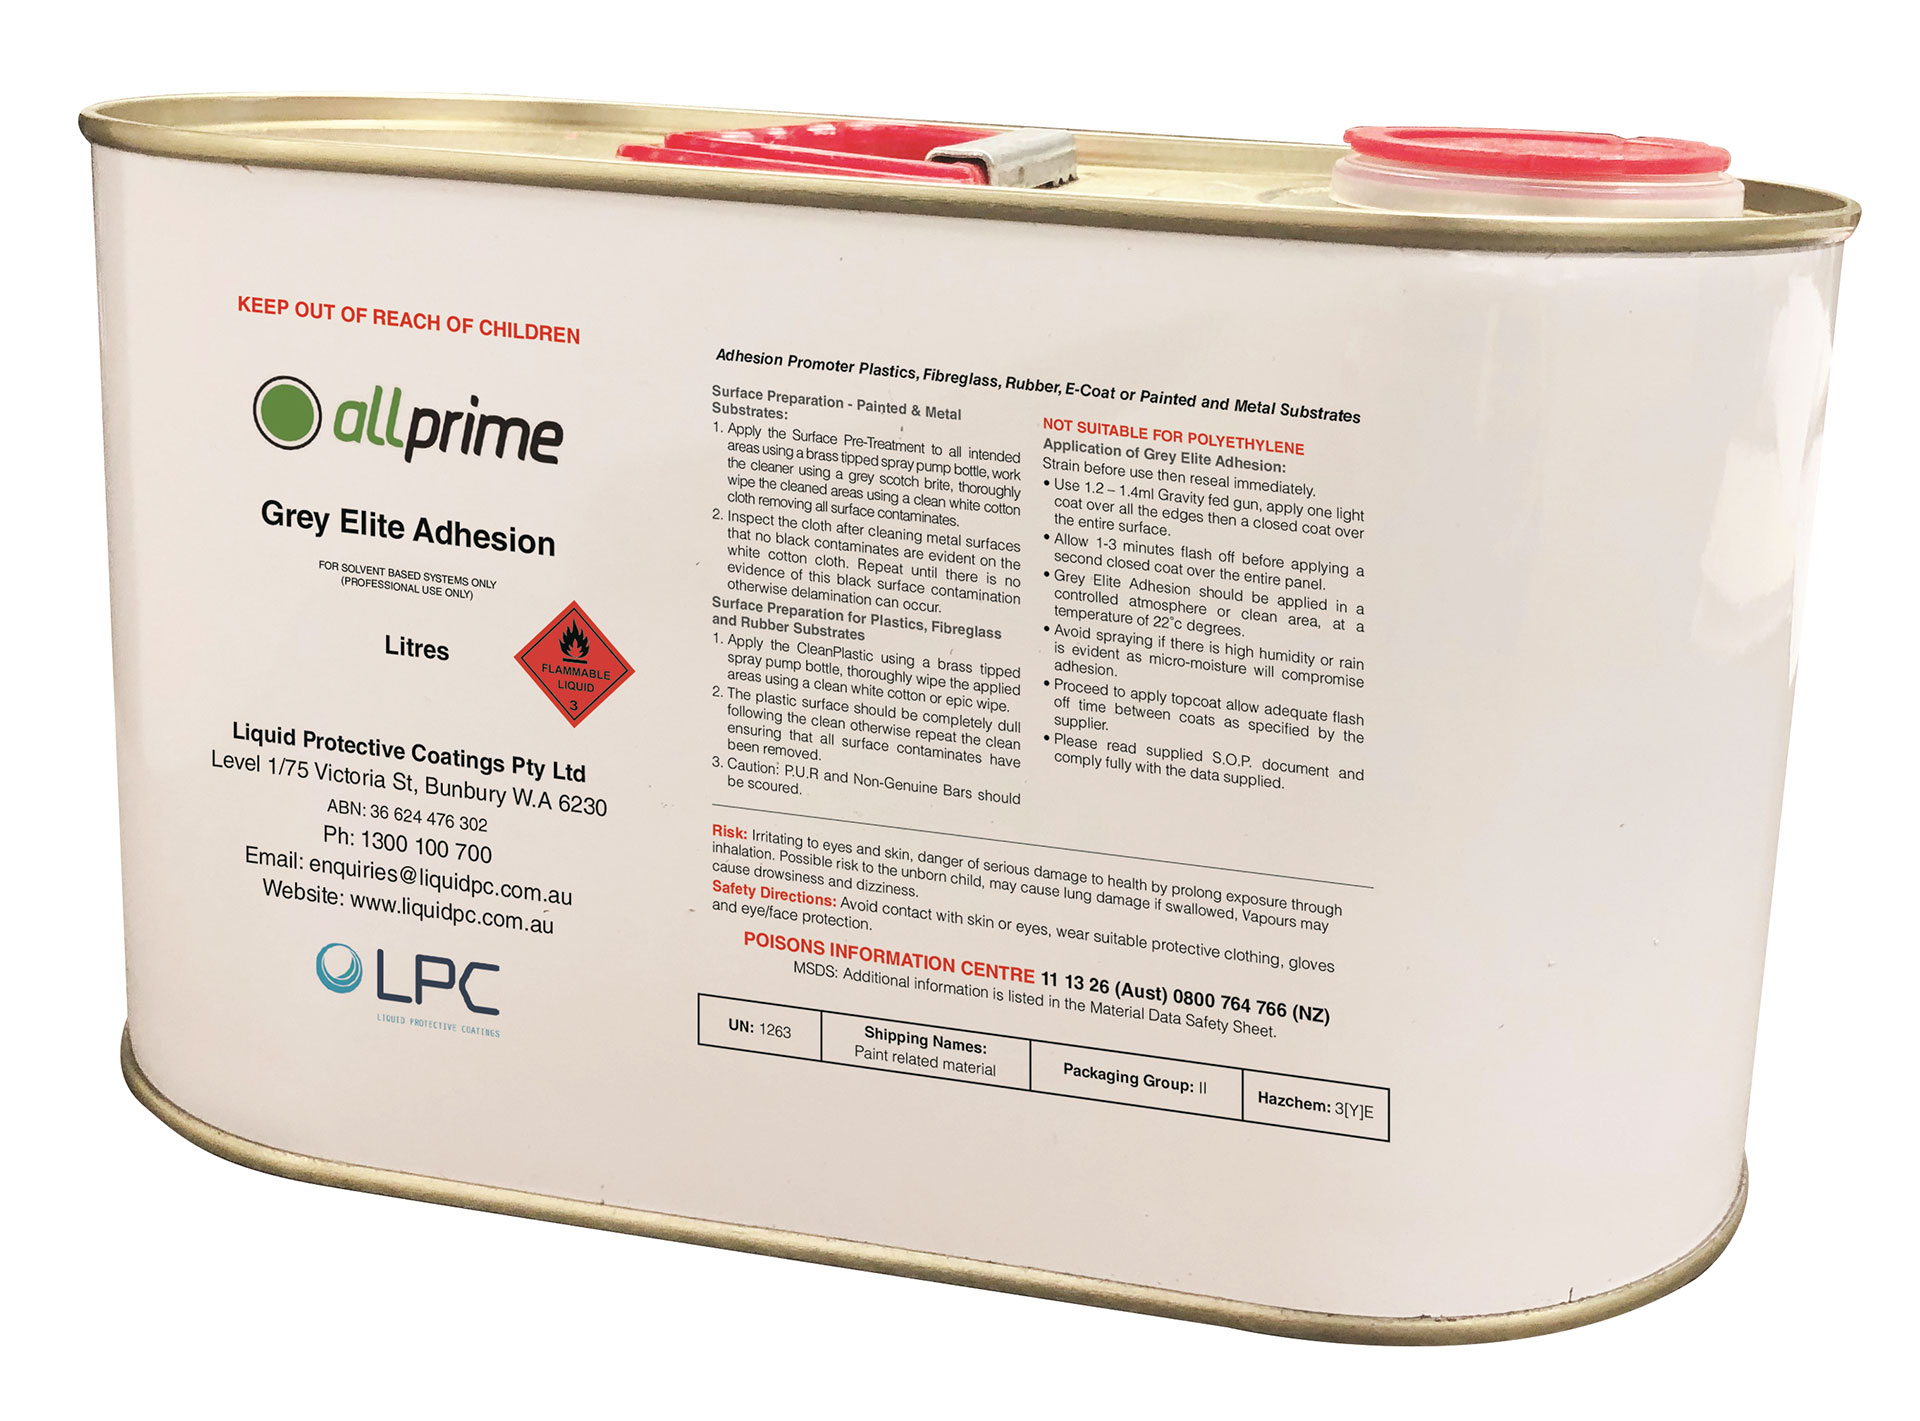 Allprime Product